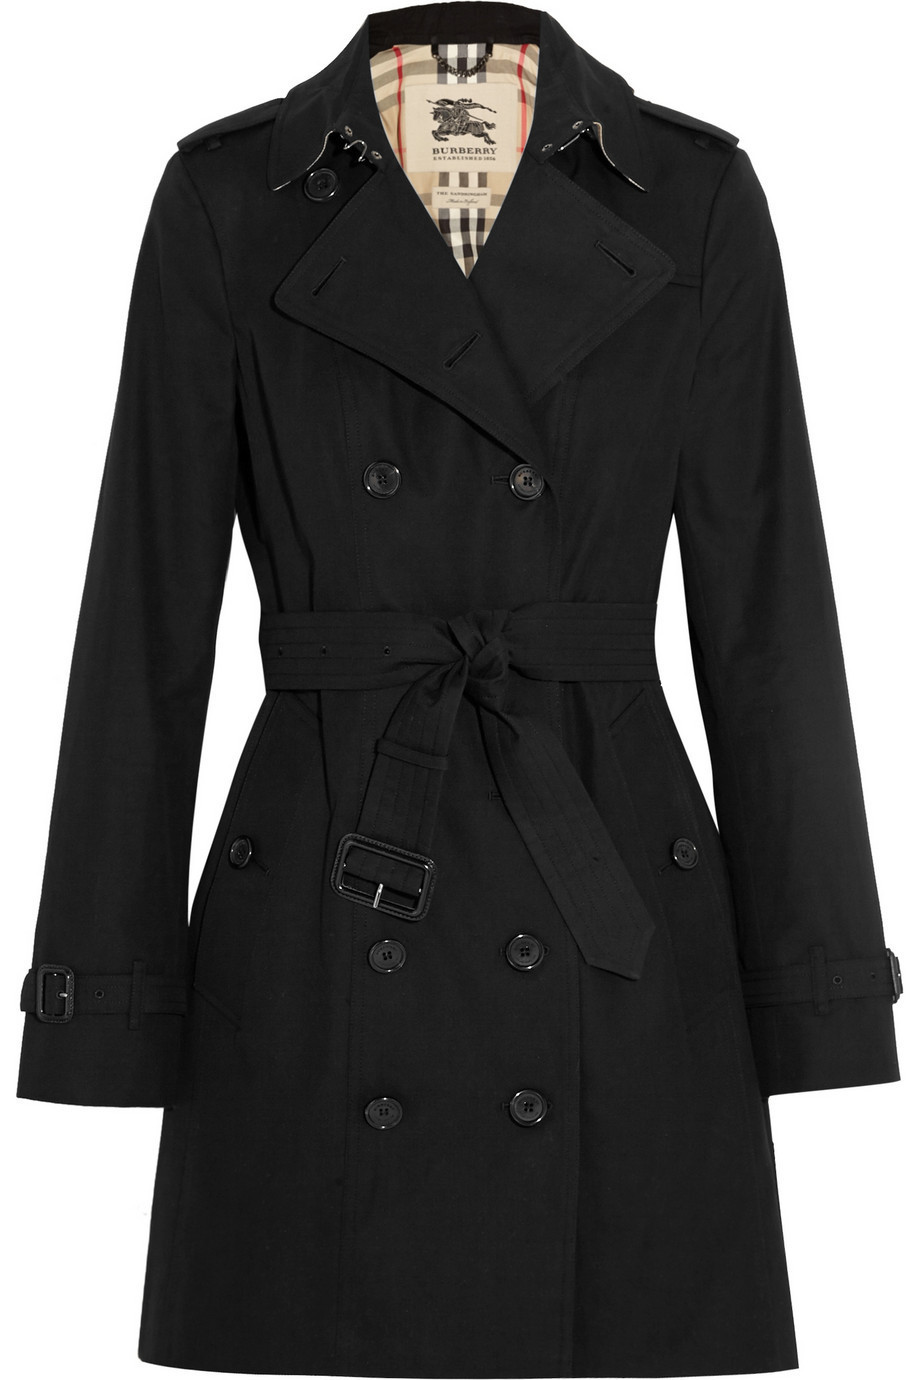 Burberry London The Sandringham Mid Cotton-Gabardine Trench Coat in black